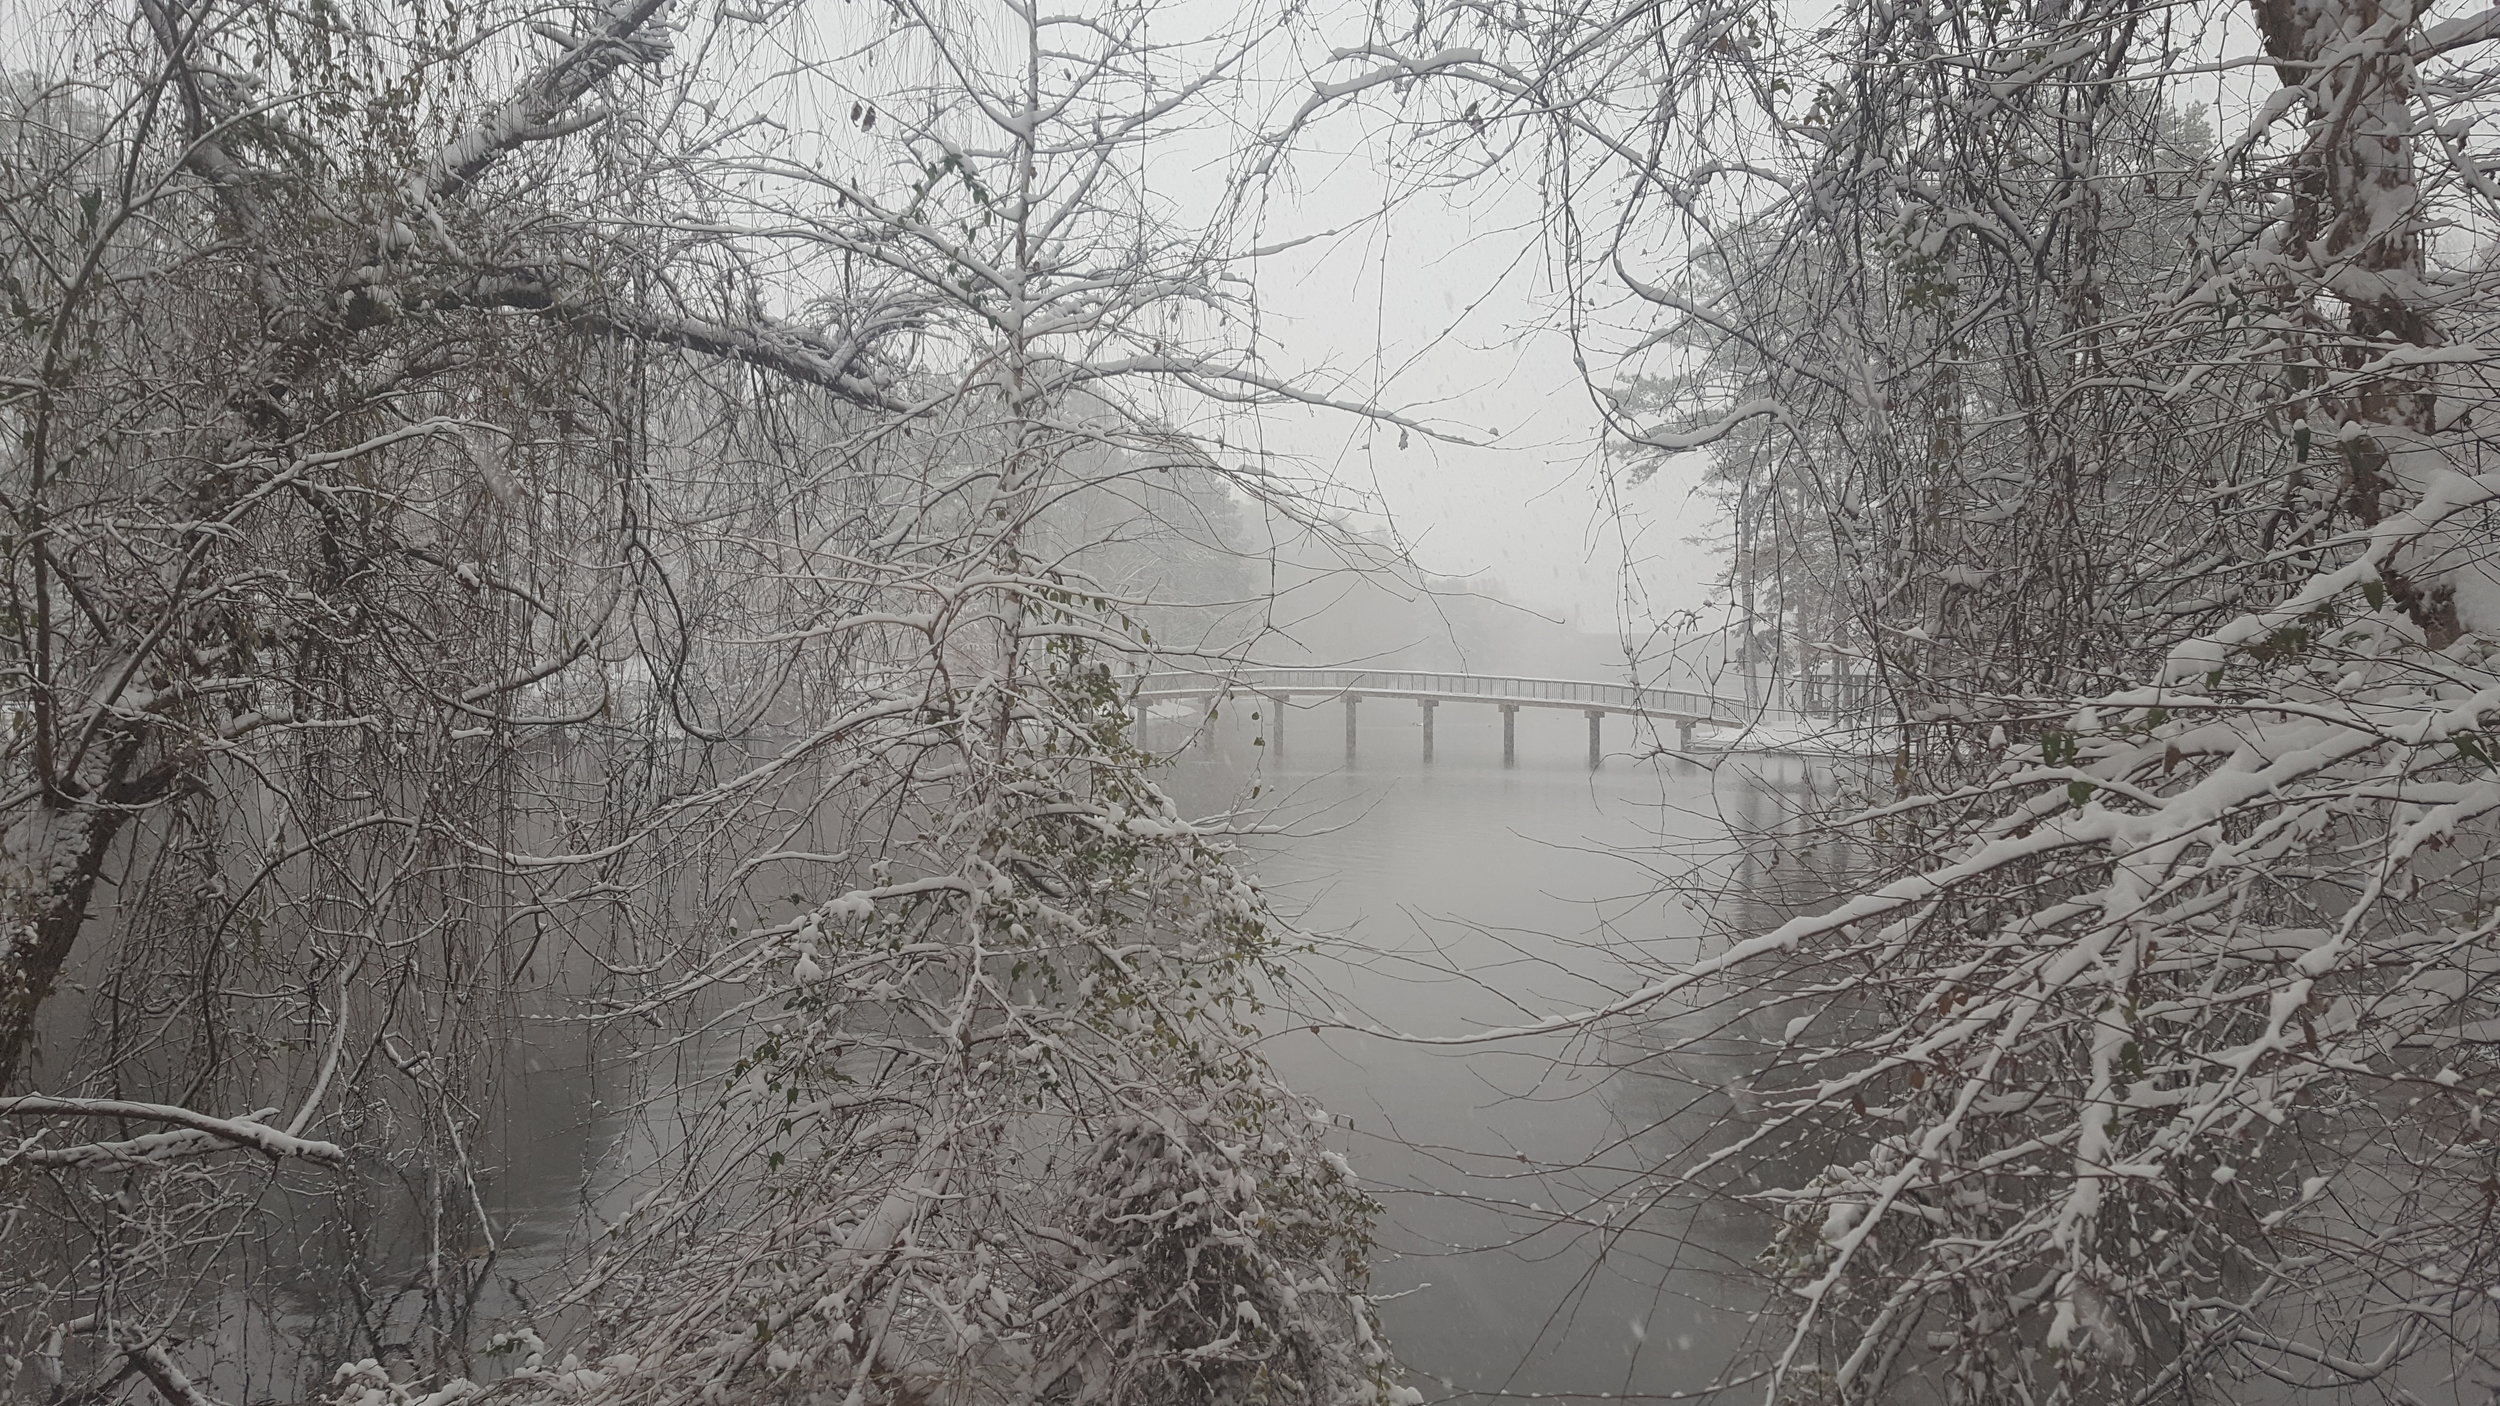 A rare, snowy December day at the University of Richmond (Source: M Zimmerman)